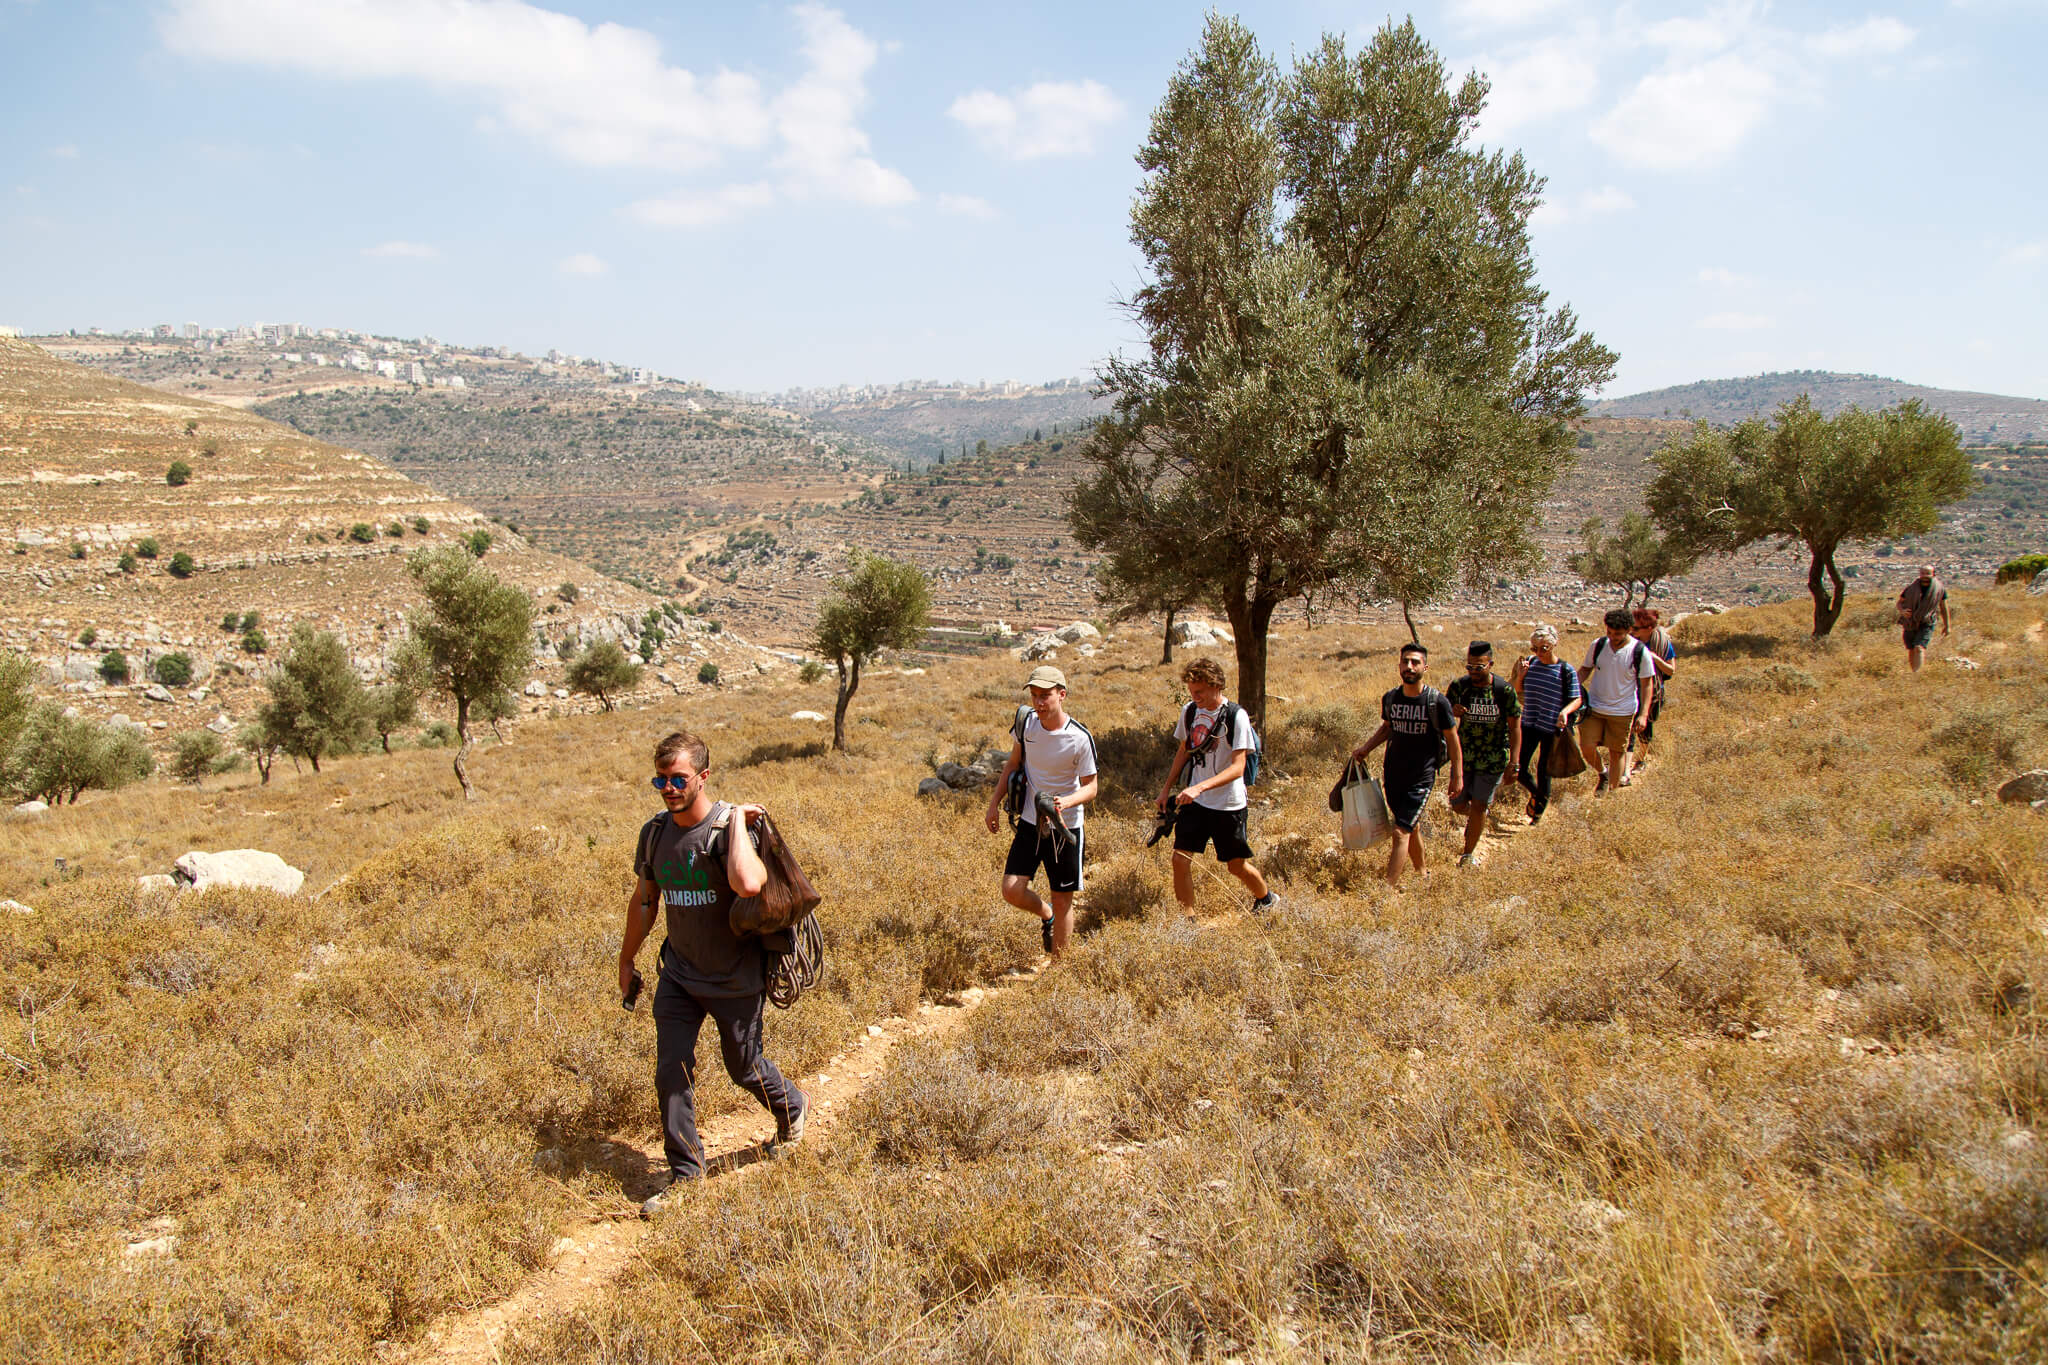 Manager of Wadi Climbing, Tyler Myers leads the group up through the valley of Ein Qiniya to the rock climbing spot. (Photo: Miriam Deprez)